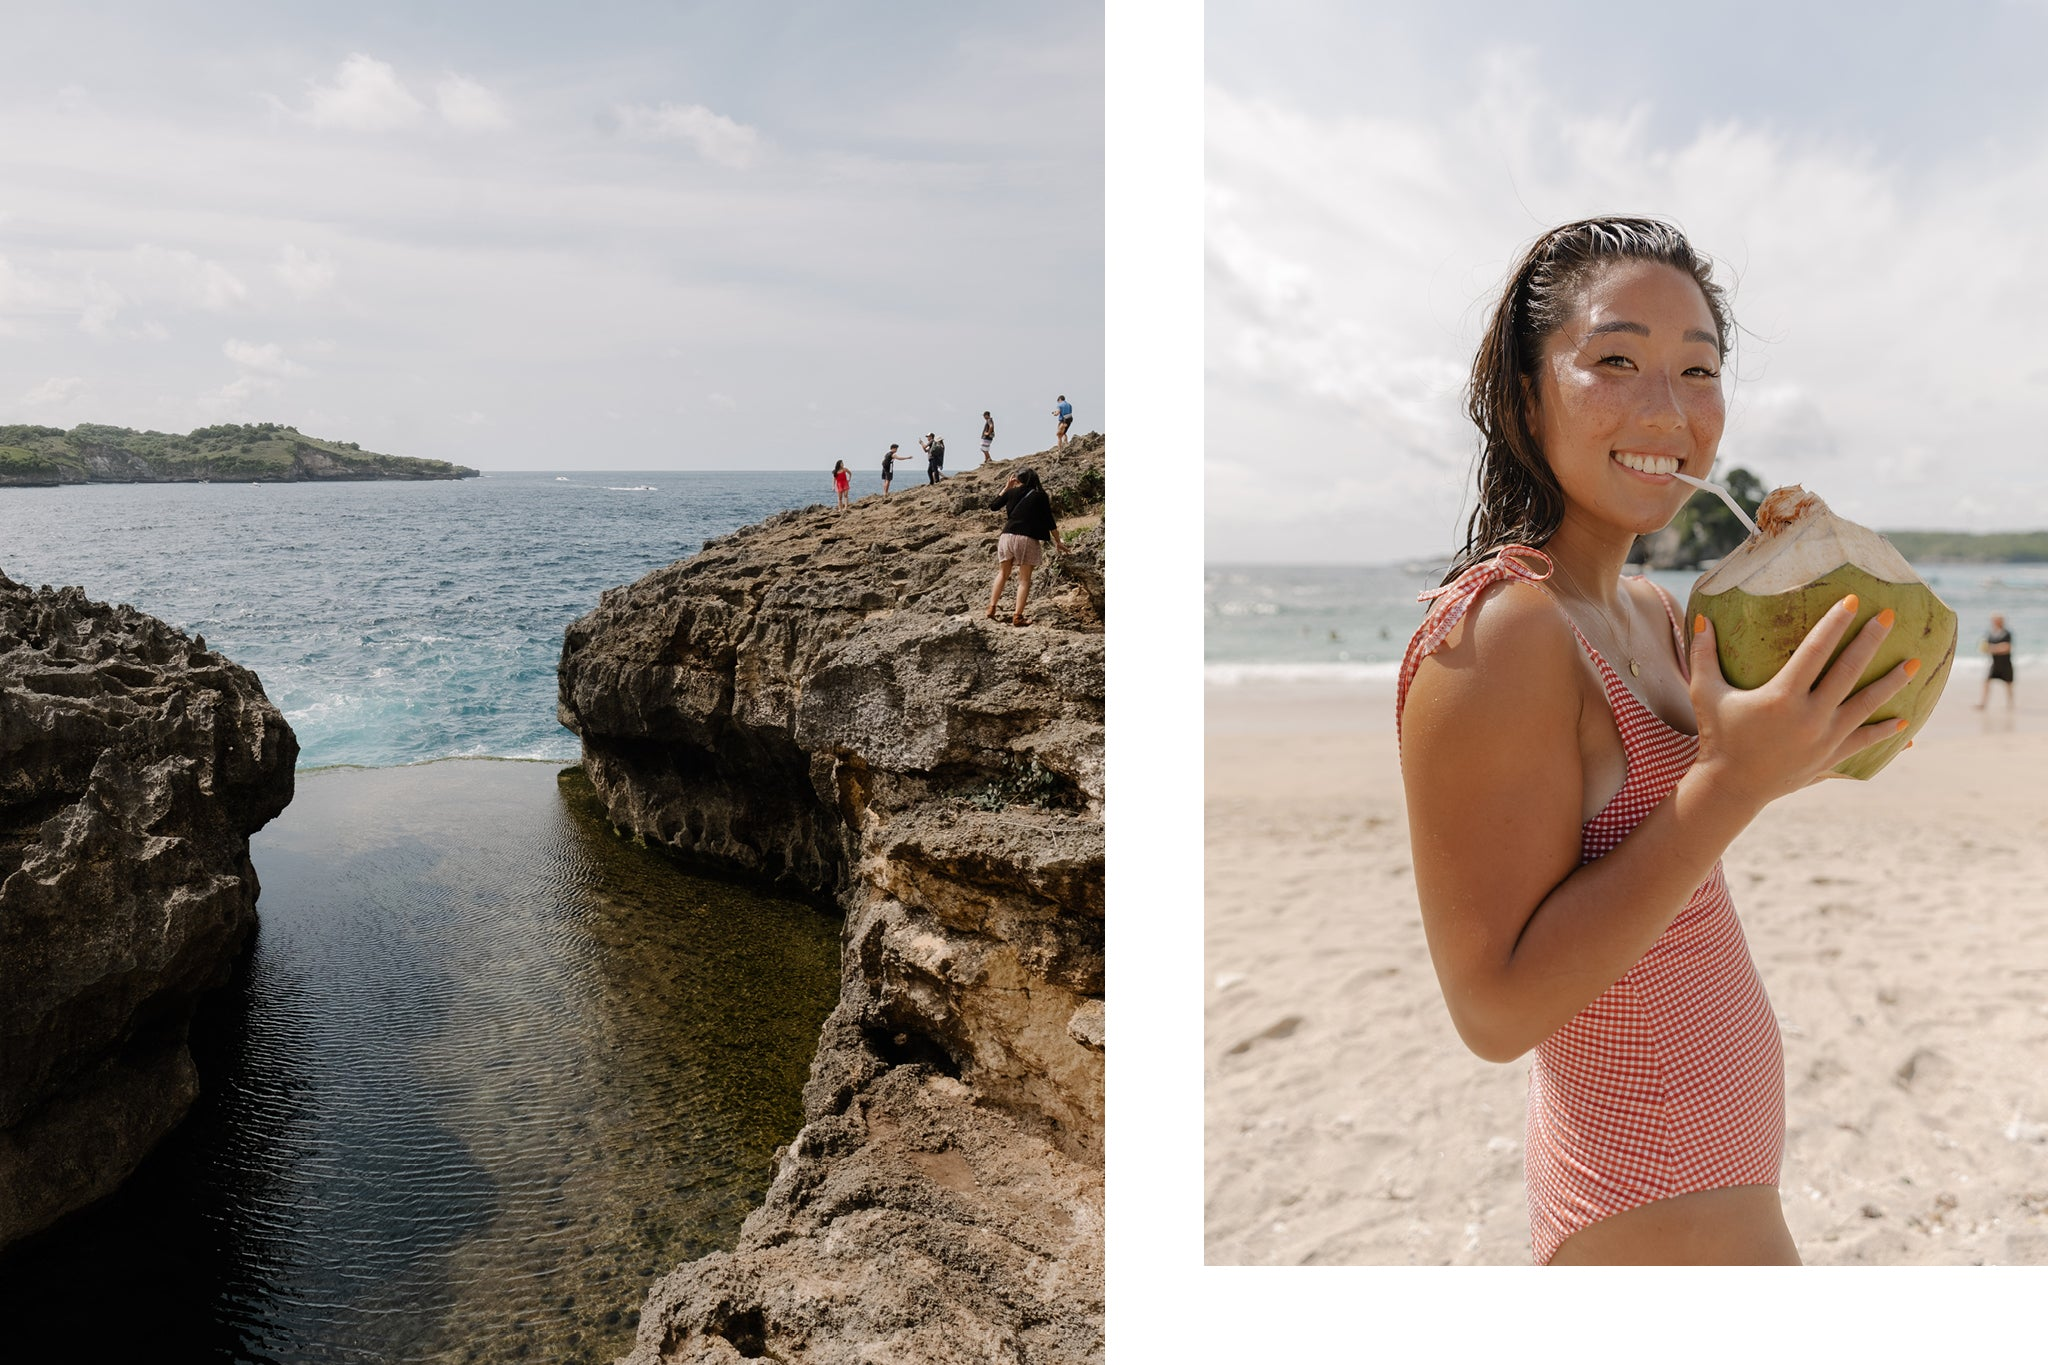 Bather's Excellent Adventures in Bali with Hanna Kim-Yoo